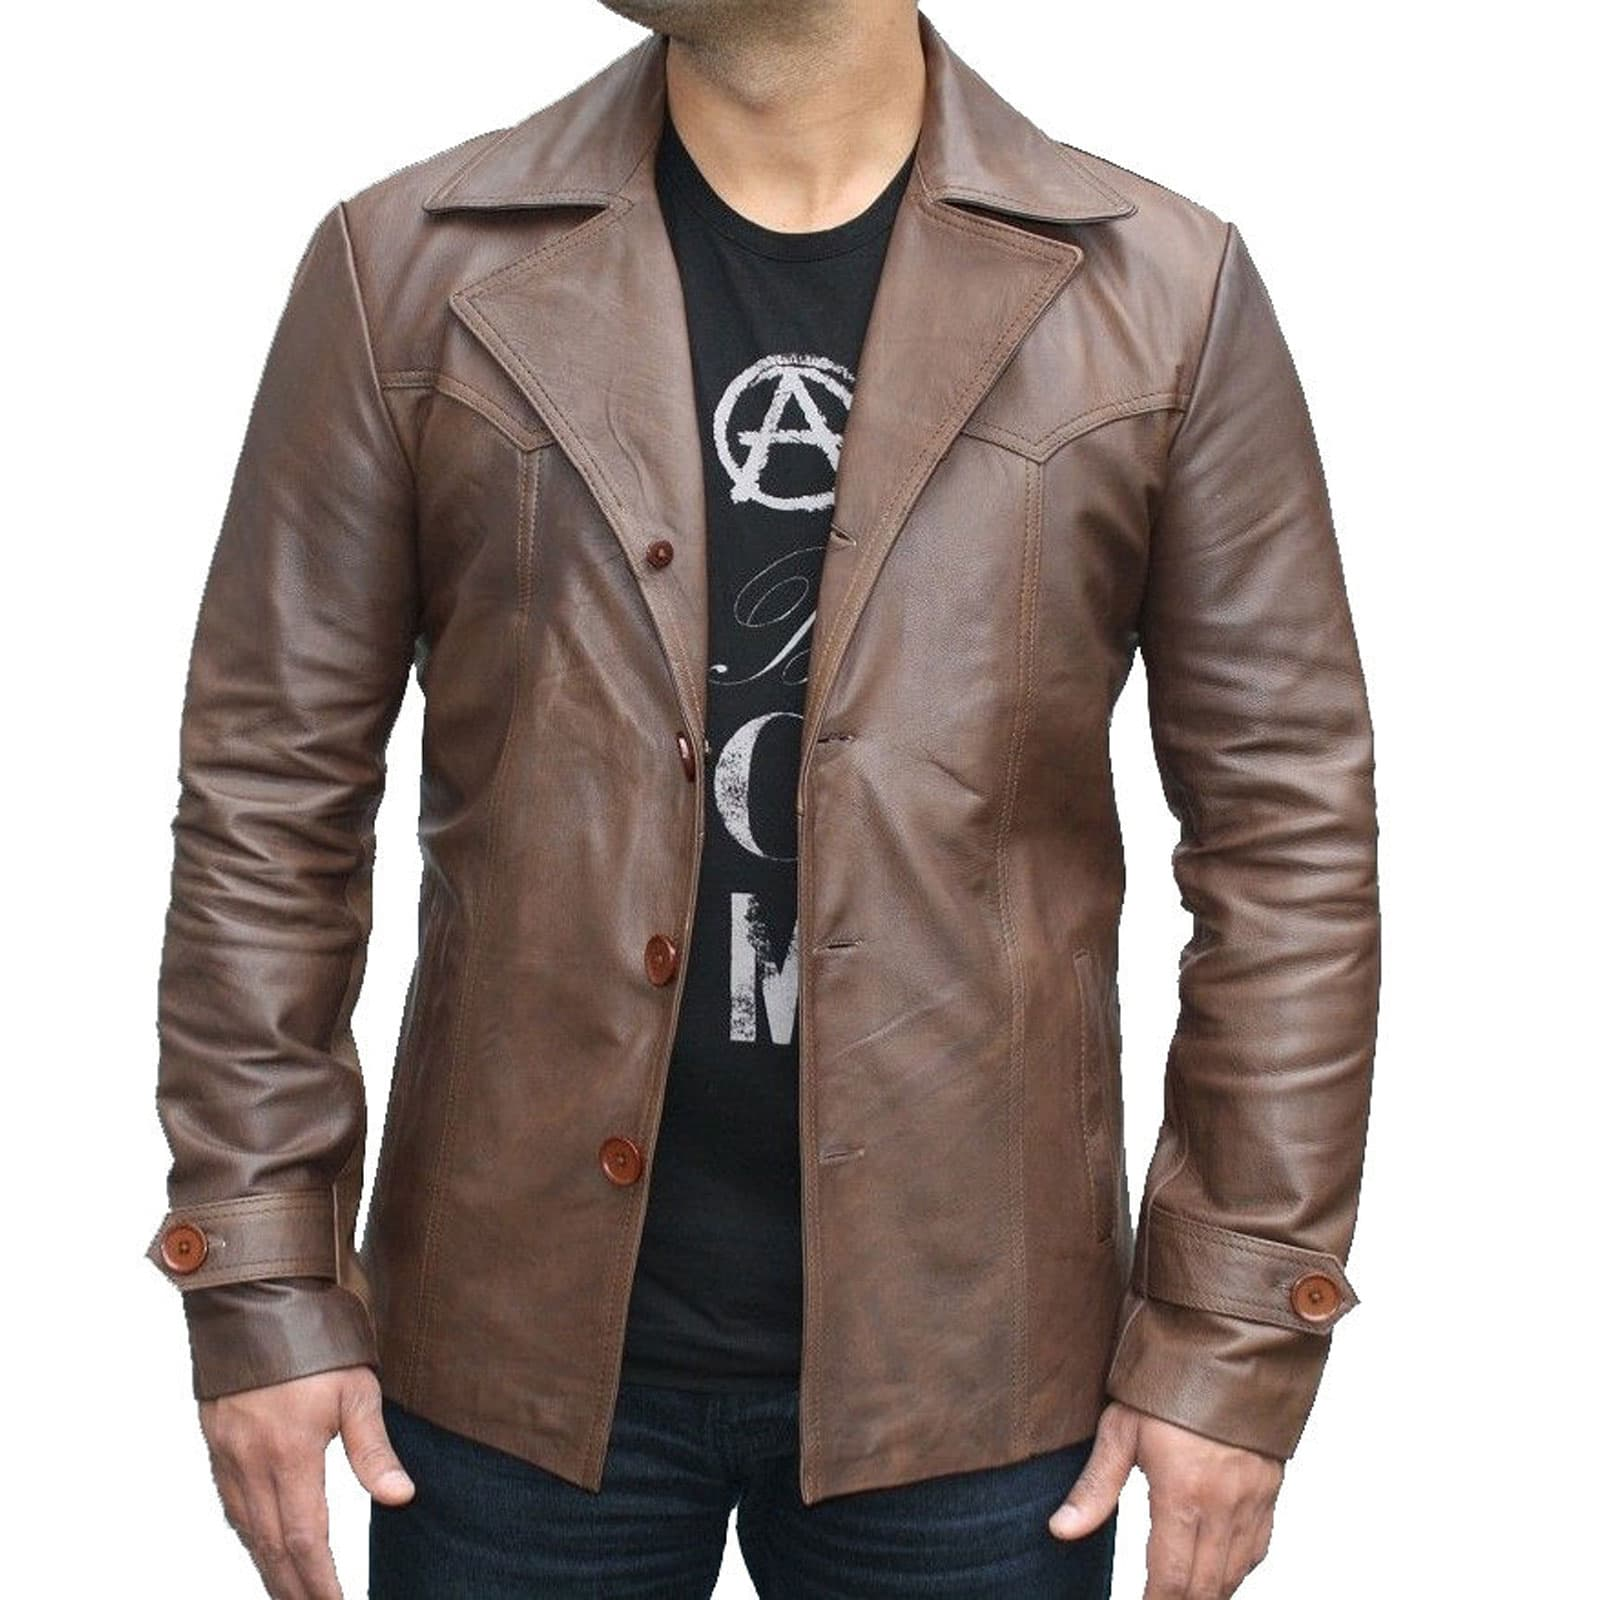 70 S Vintage Men S Leather Jacket 100 Genuine Leather Kilt And